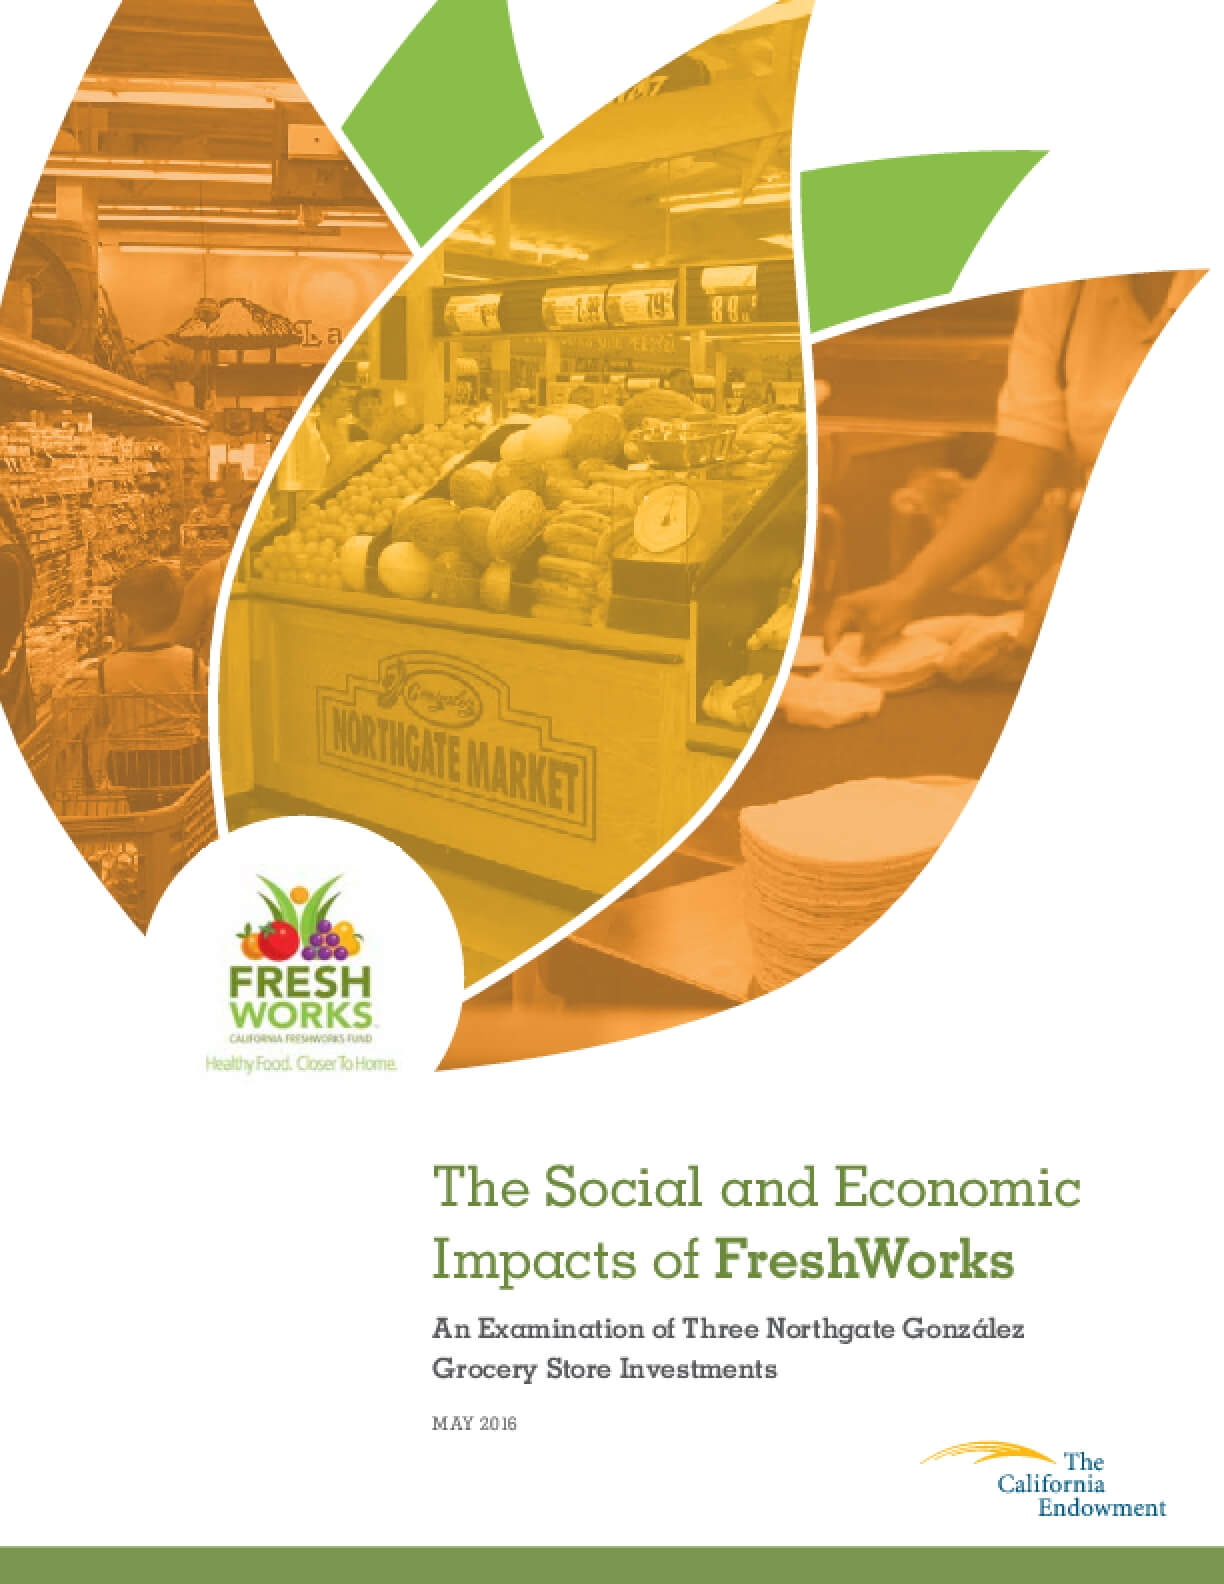 The Social and Economic Impacts of FreshWorks: An Examination of Three Northgate Gonzalez Grocery Store Investments